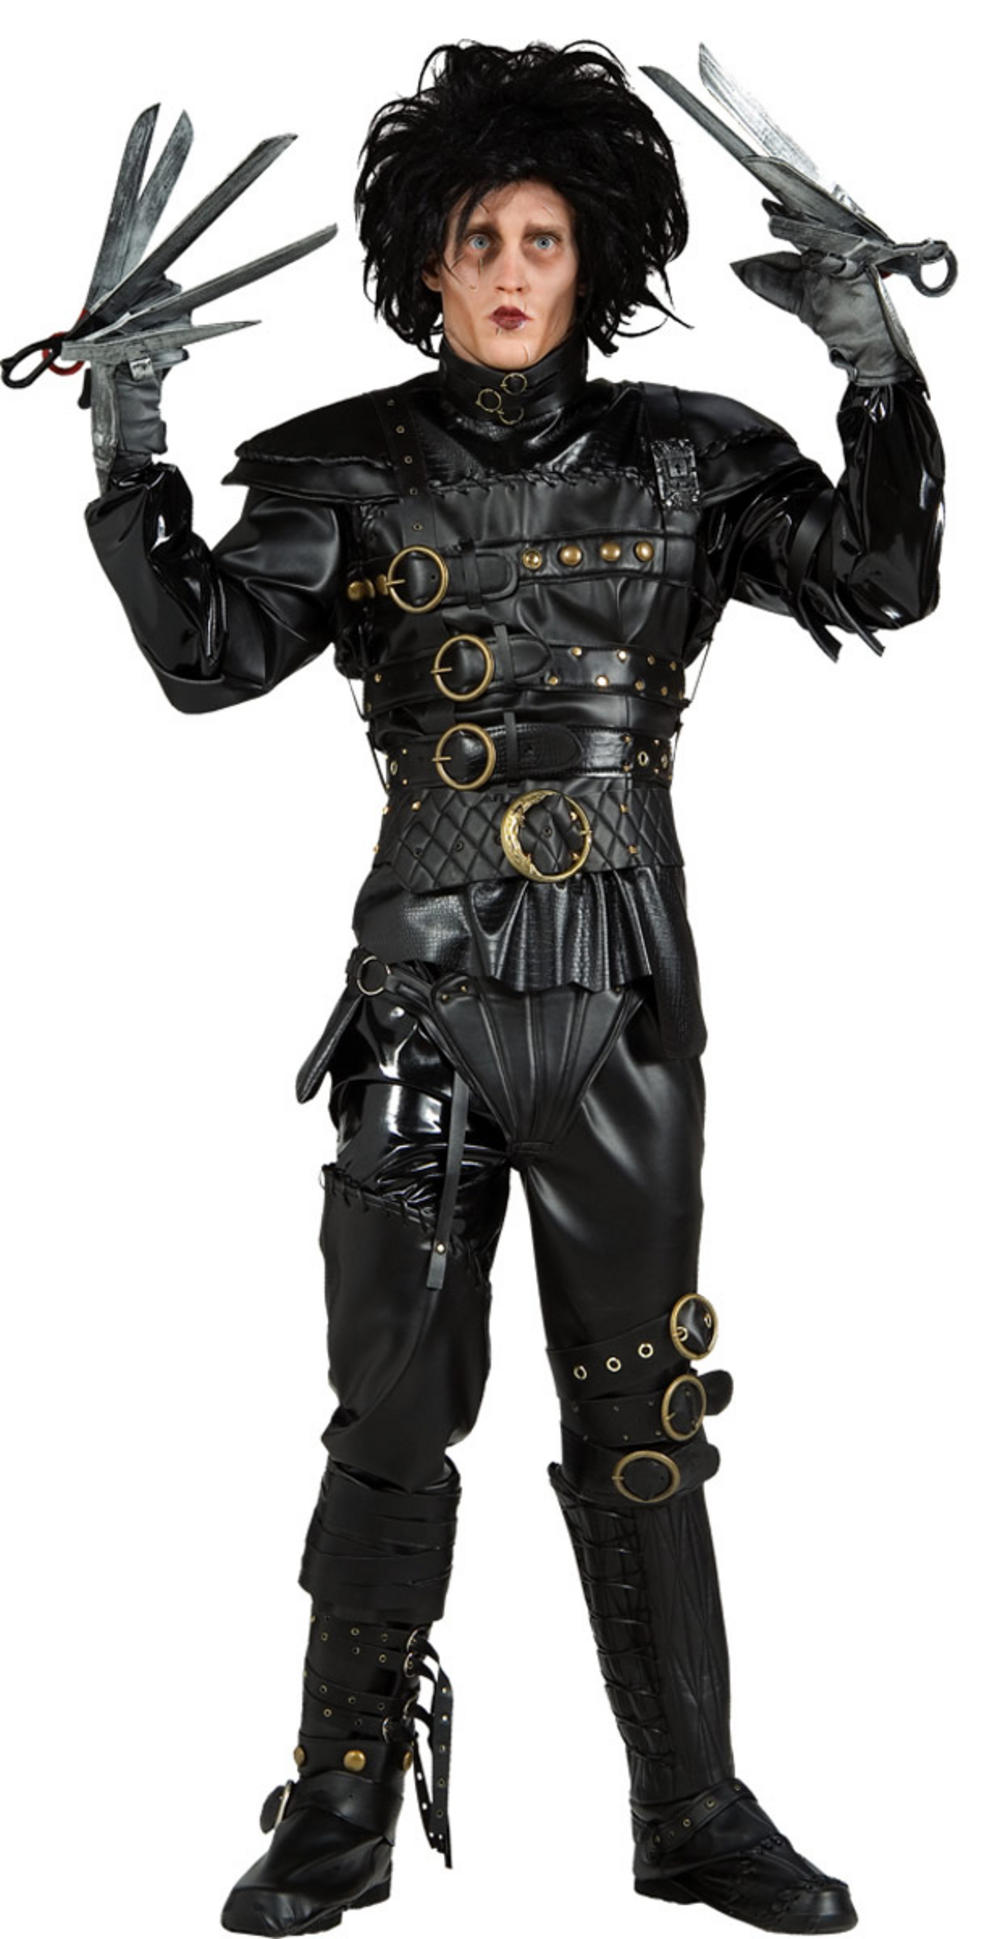 Grand Heritage Edward Scissor Hands Costume